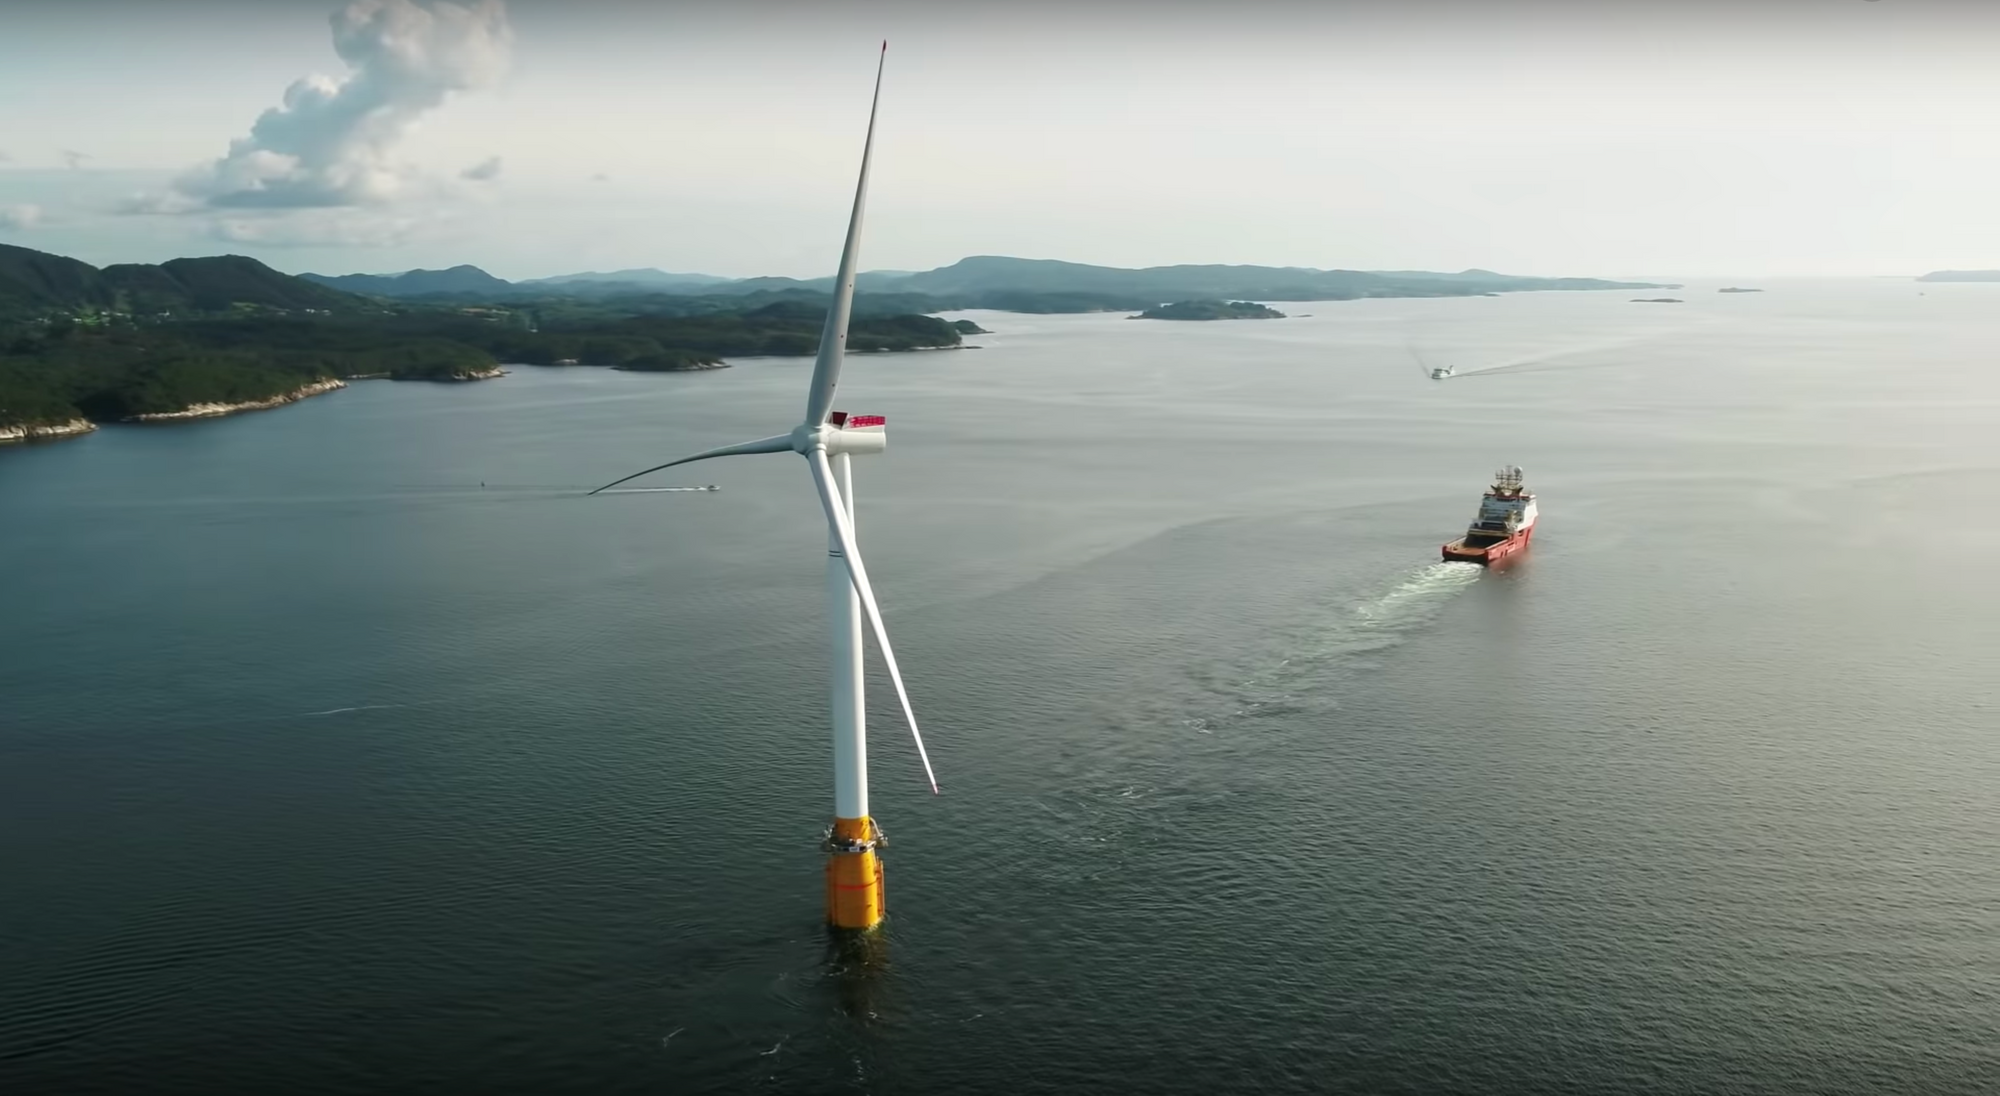 Spectacular images, video tell the story of the world's first offshore wind farm